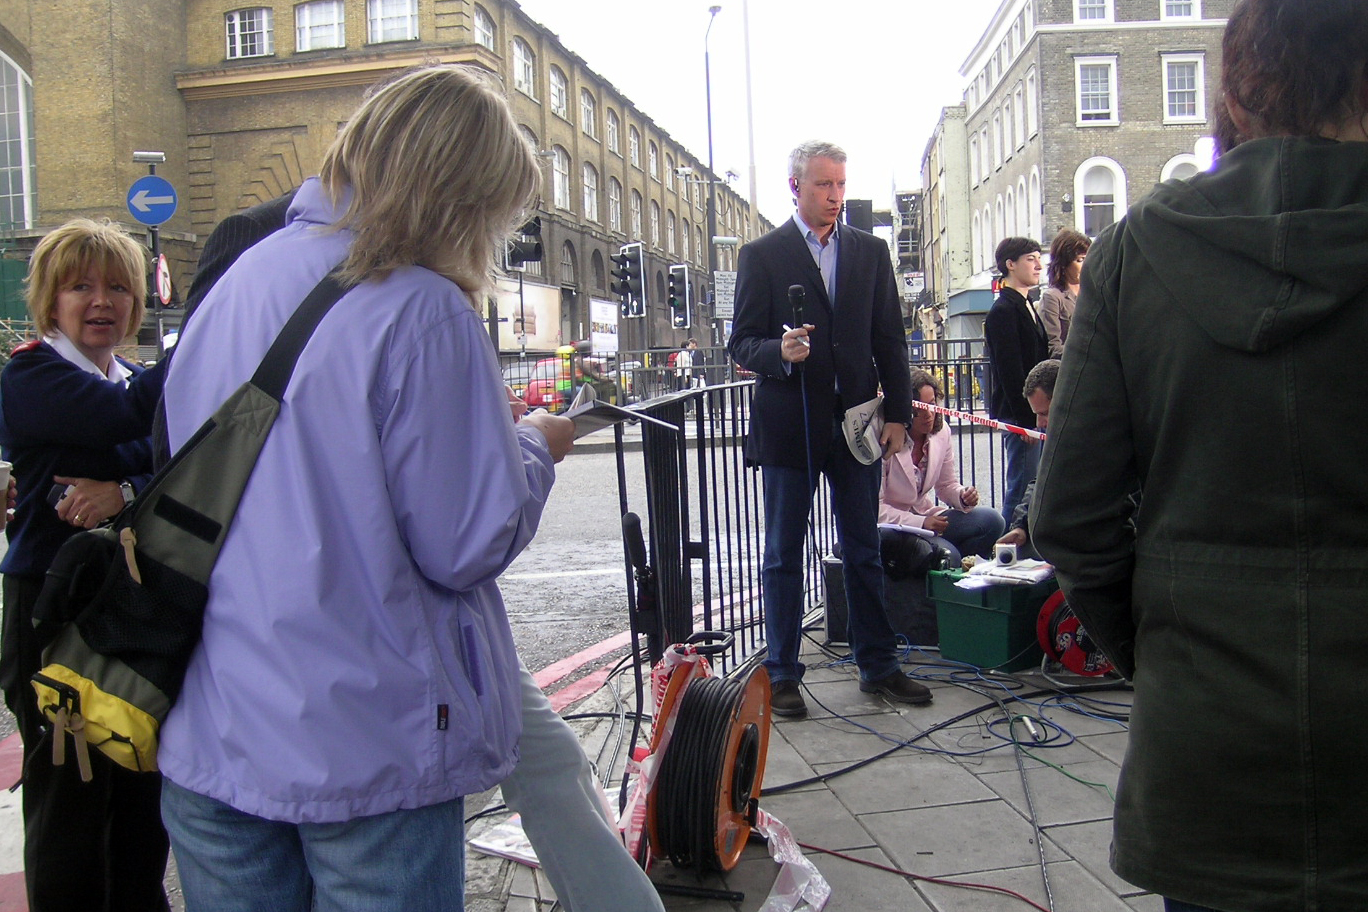 As we walked to the bus Anderson Cooper was doing a newscast for CNN.